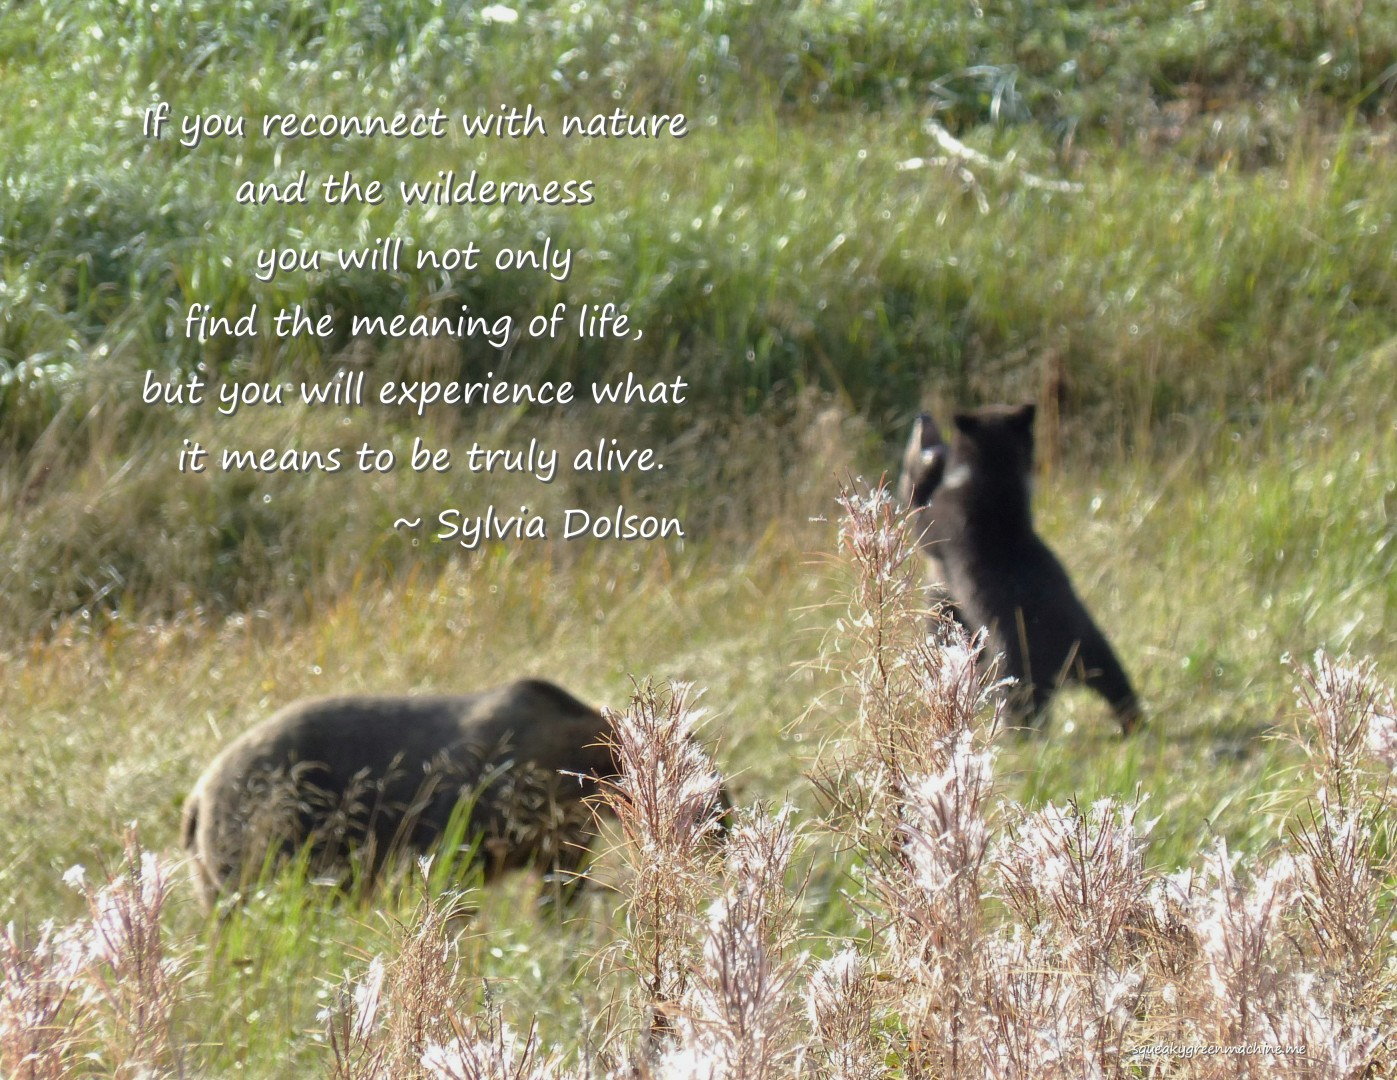 "Bears with Sylvia Dolson quote ""If you reconnect with nature and the wilderness you will not only find the meaning of life, but you will experience what it means to be truly alive."""